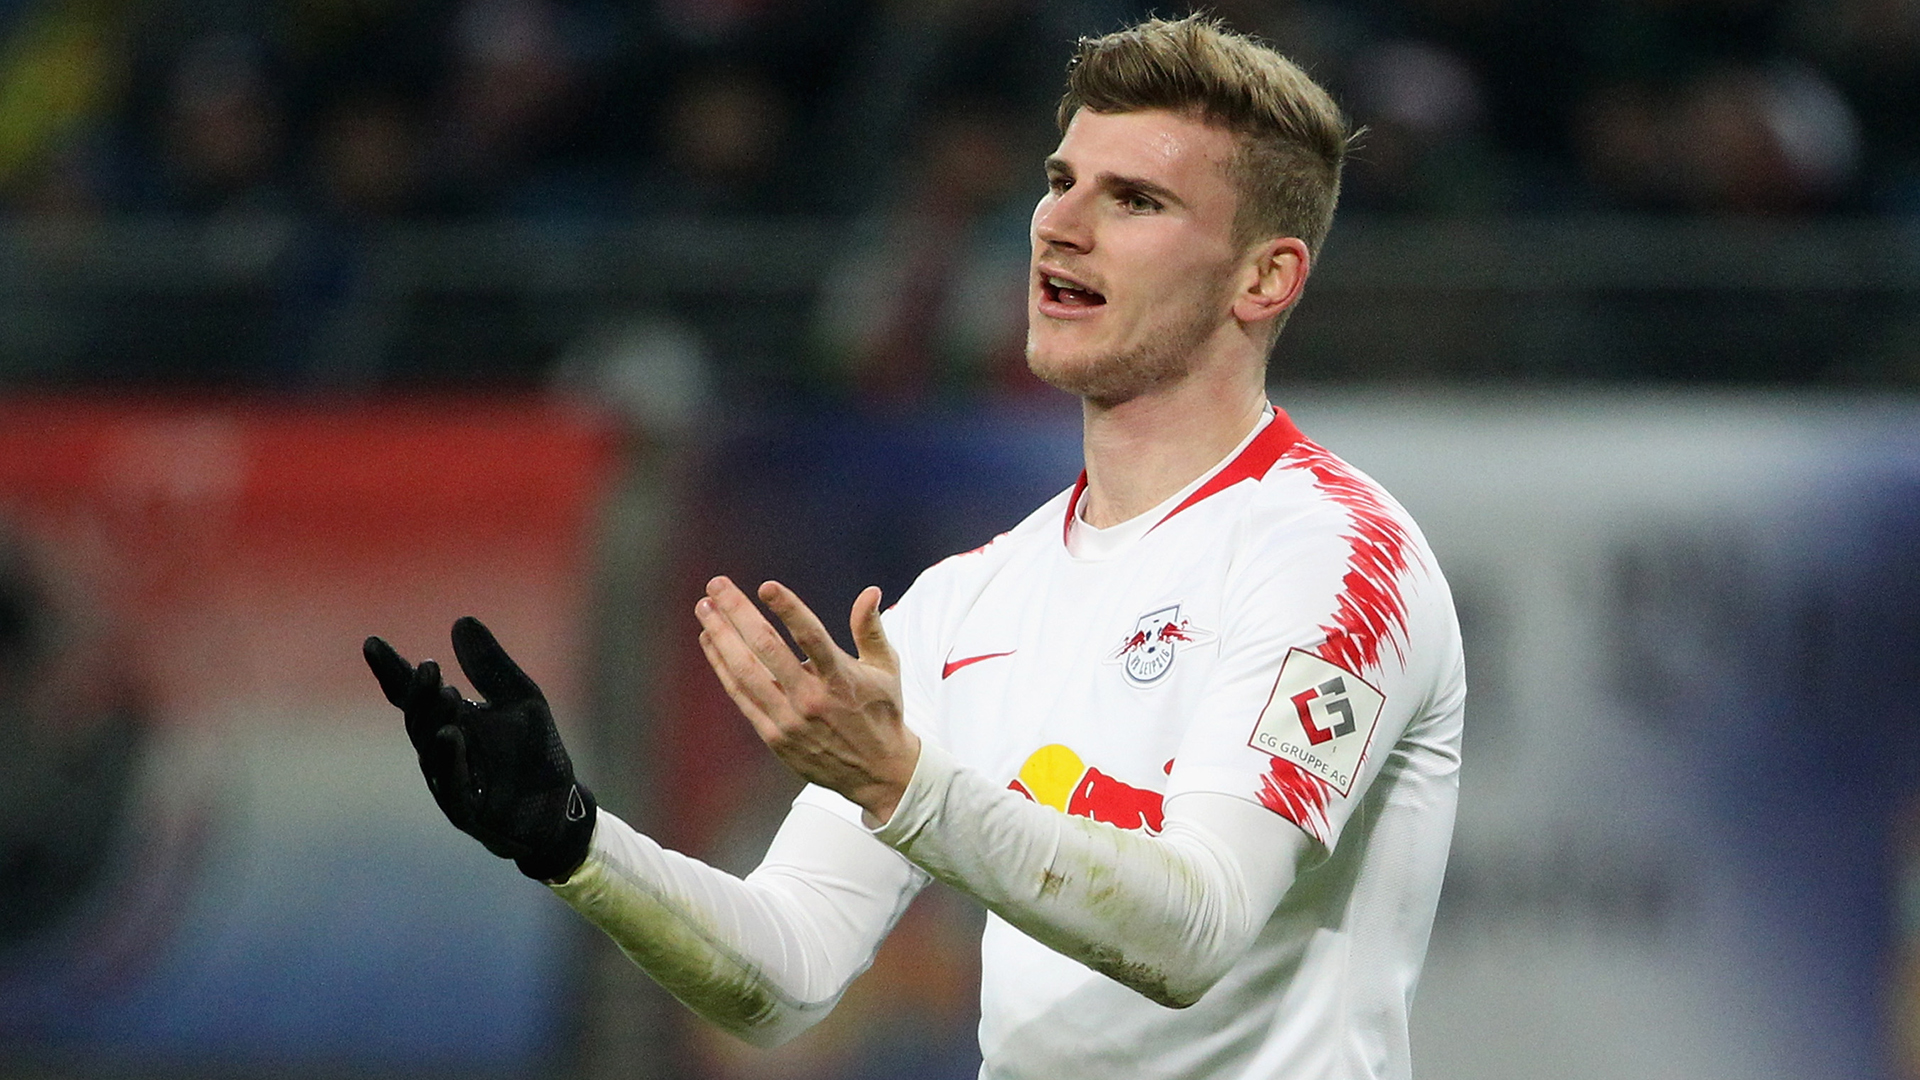 Bayern move unlikely for Werner, claims Leipzig boss